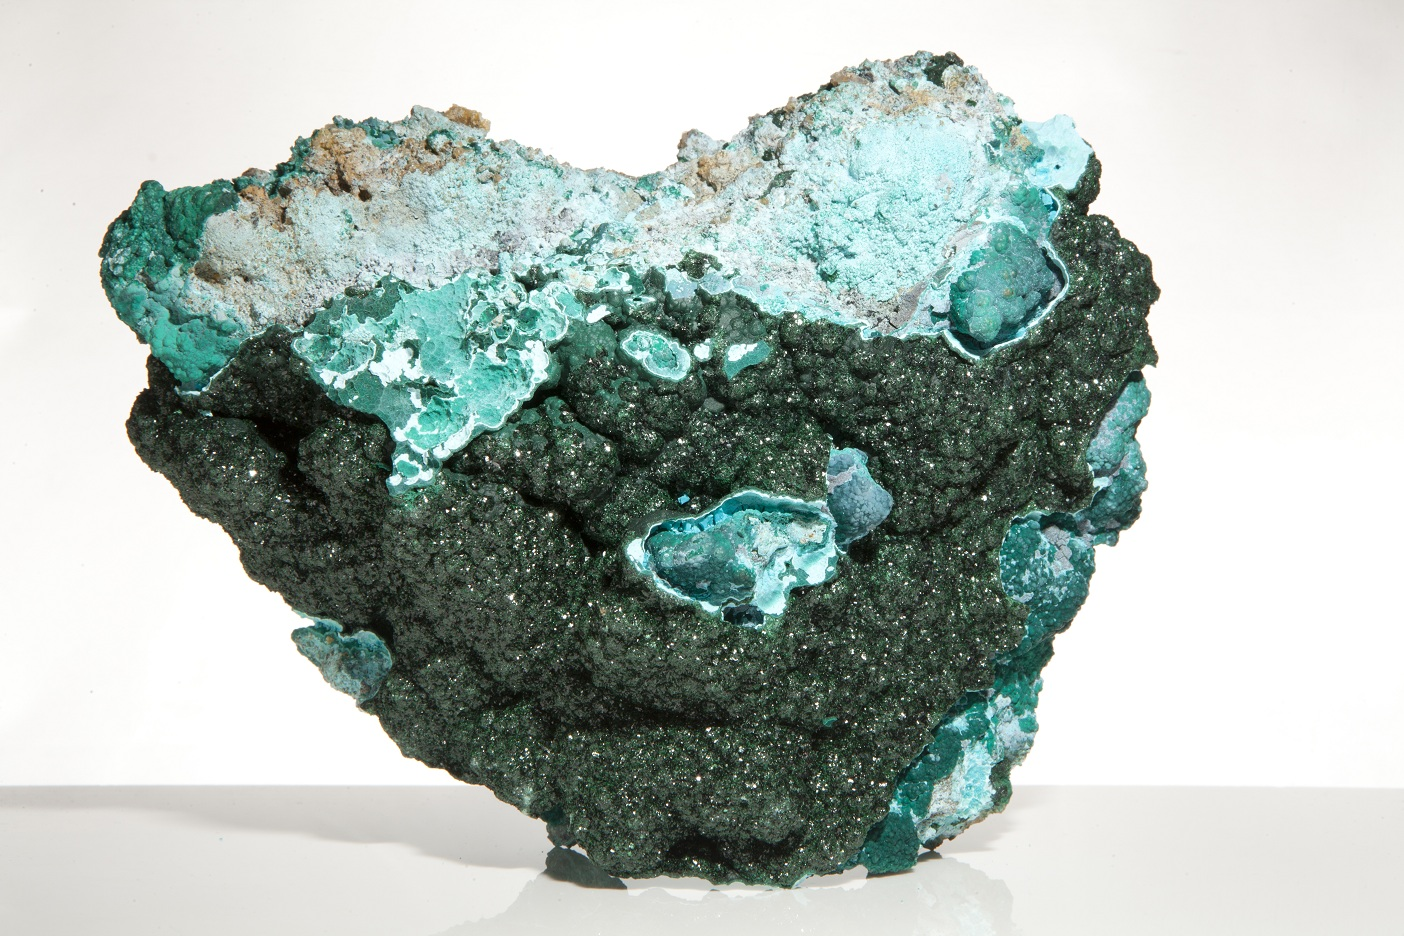 malachite crystals on chrysoccolla 5 x 4 x 2 celestial earth